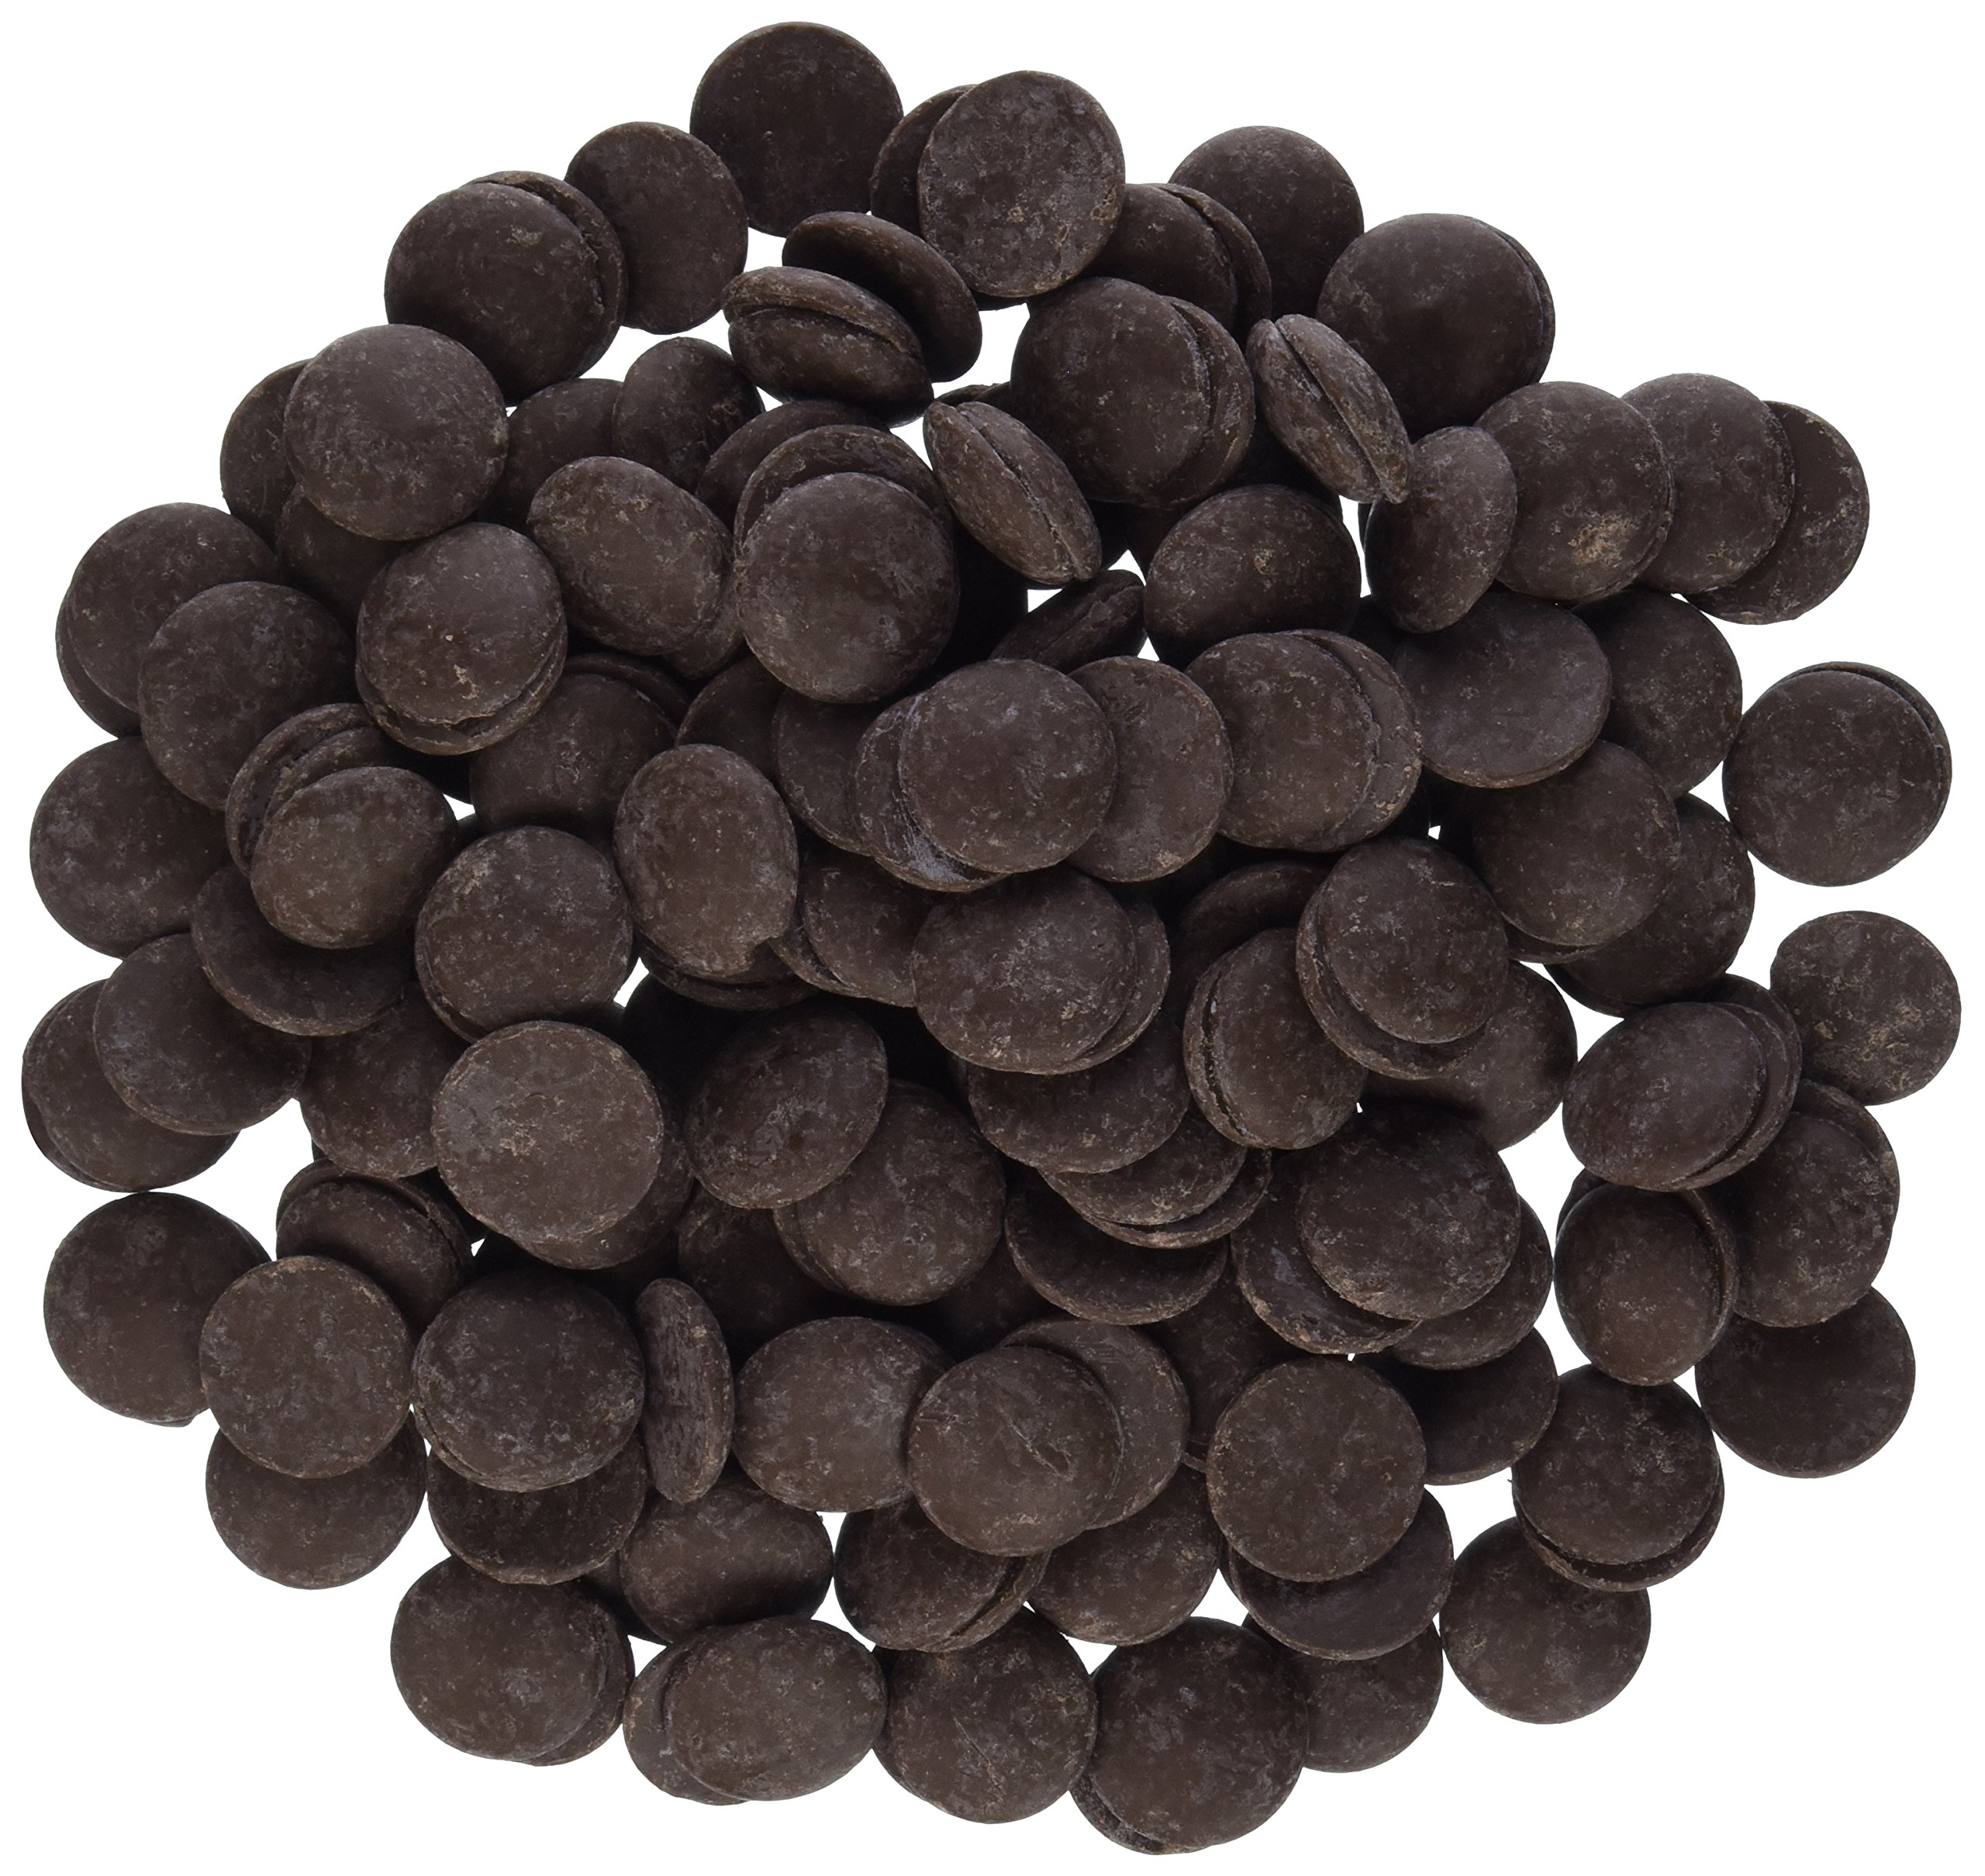 Oasis Supply Mercken's Chocolate Wafters Candy Making Supplies, Dark, 10 Pound by Oasis Supply (Image #2)